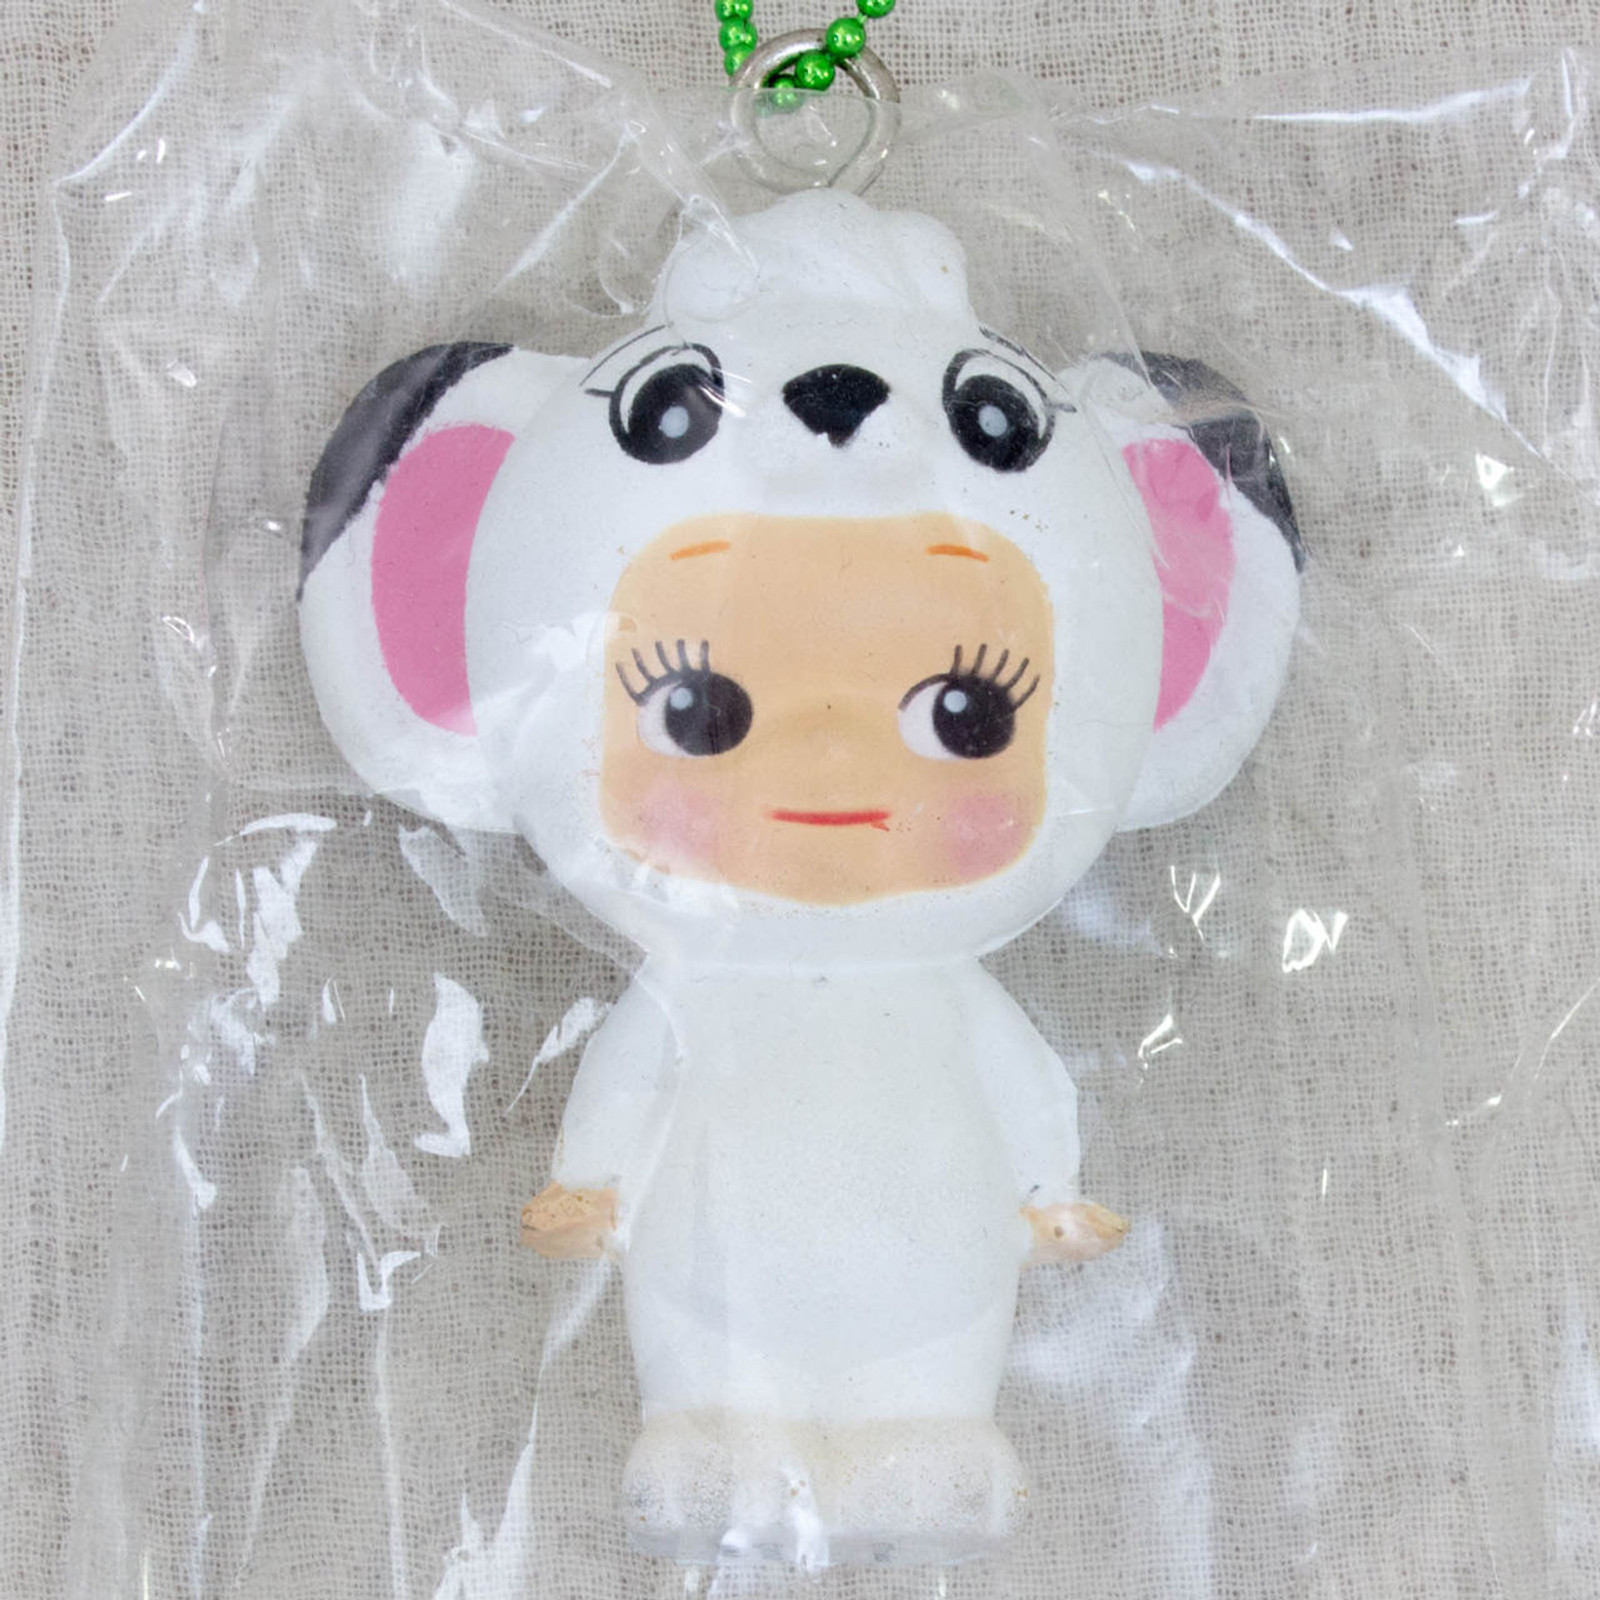 Jungle Emperor Leo Squeeze Figure Rose O'neill Kewpie Kewsion Keychain JAPAN